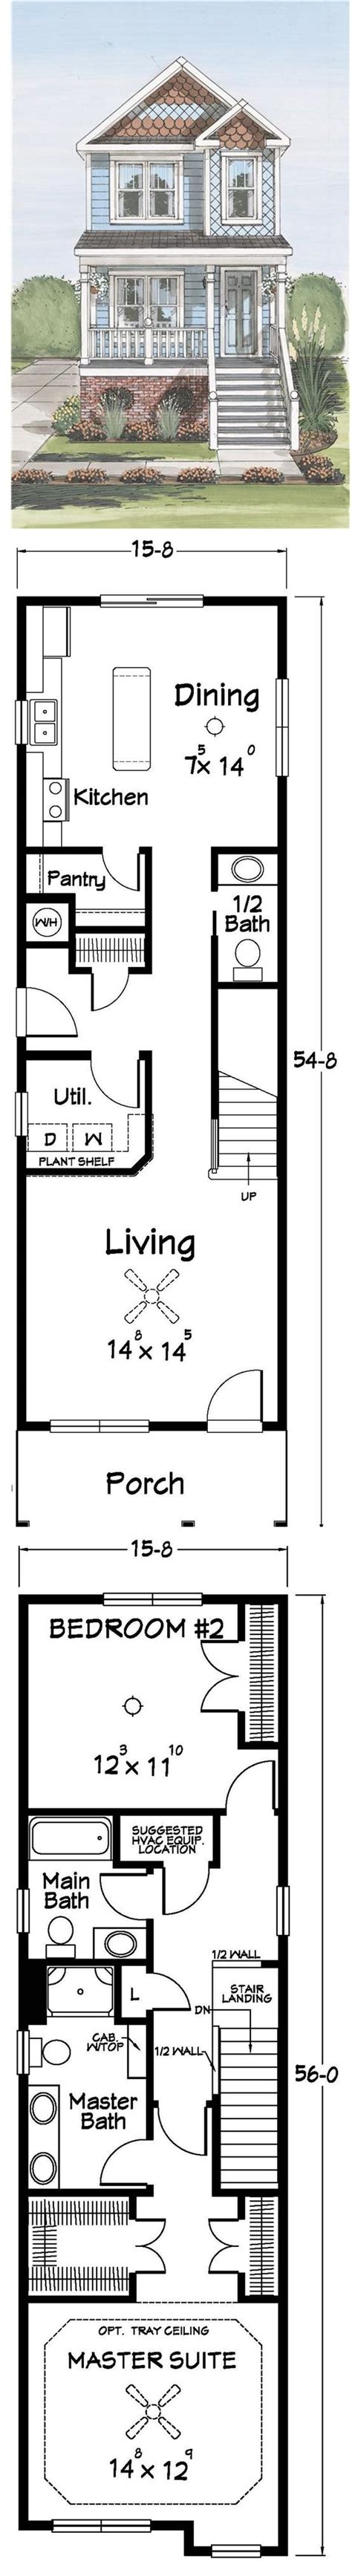 narrow house plans best ideas about narrow lot house plans narrow house and